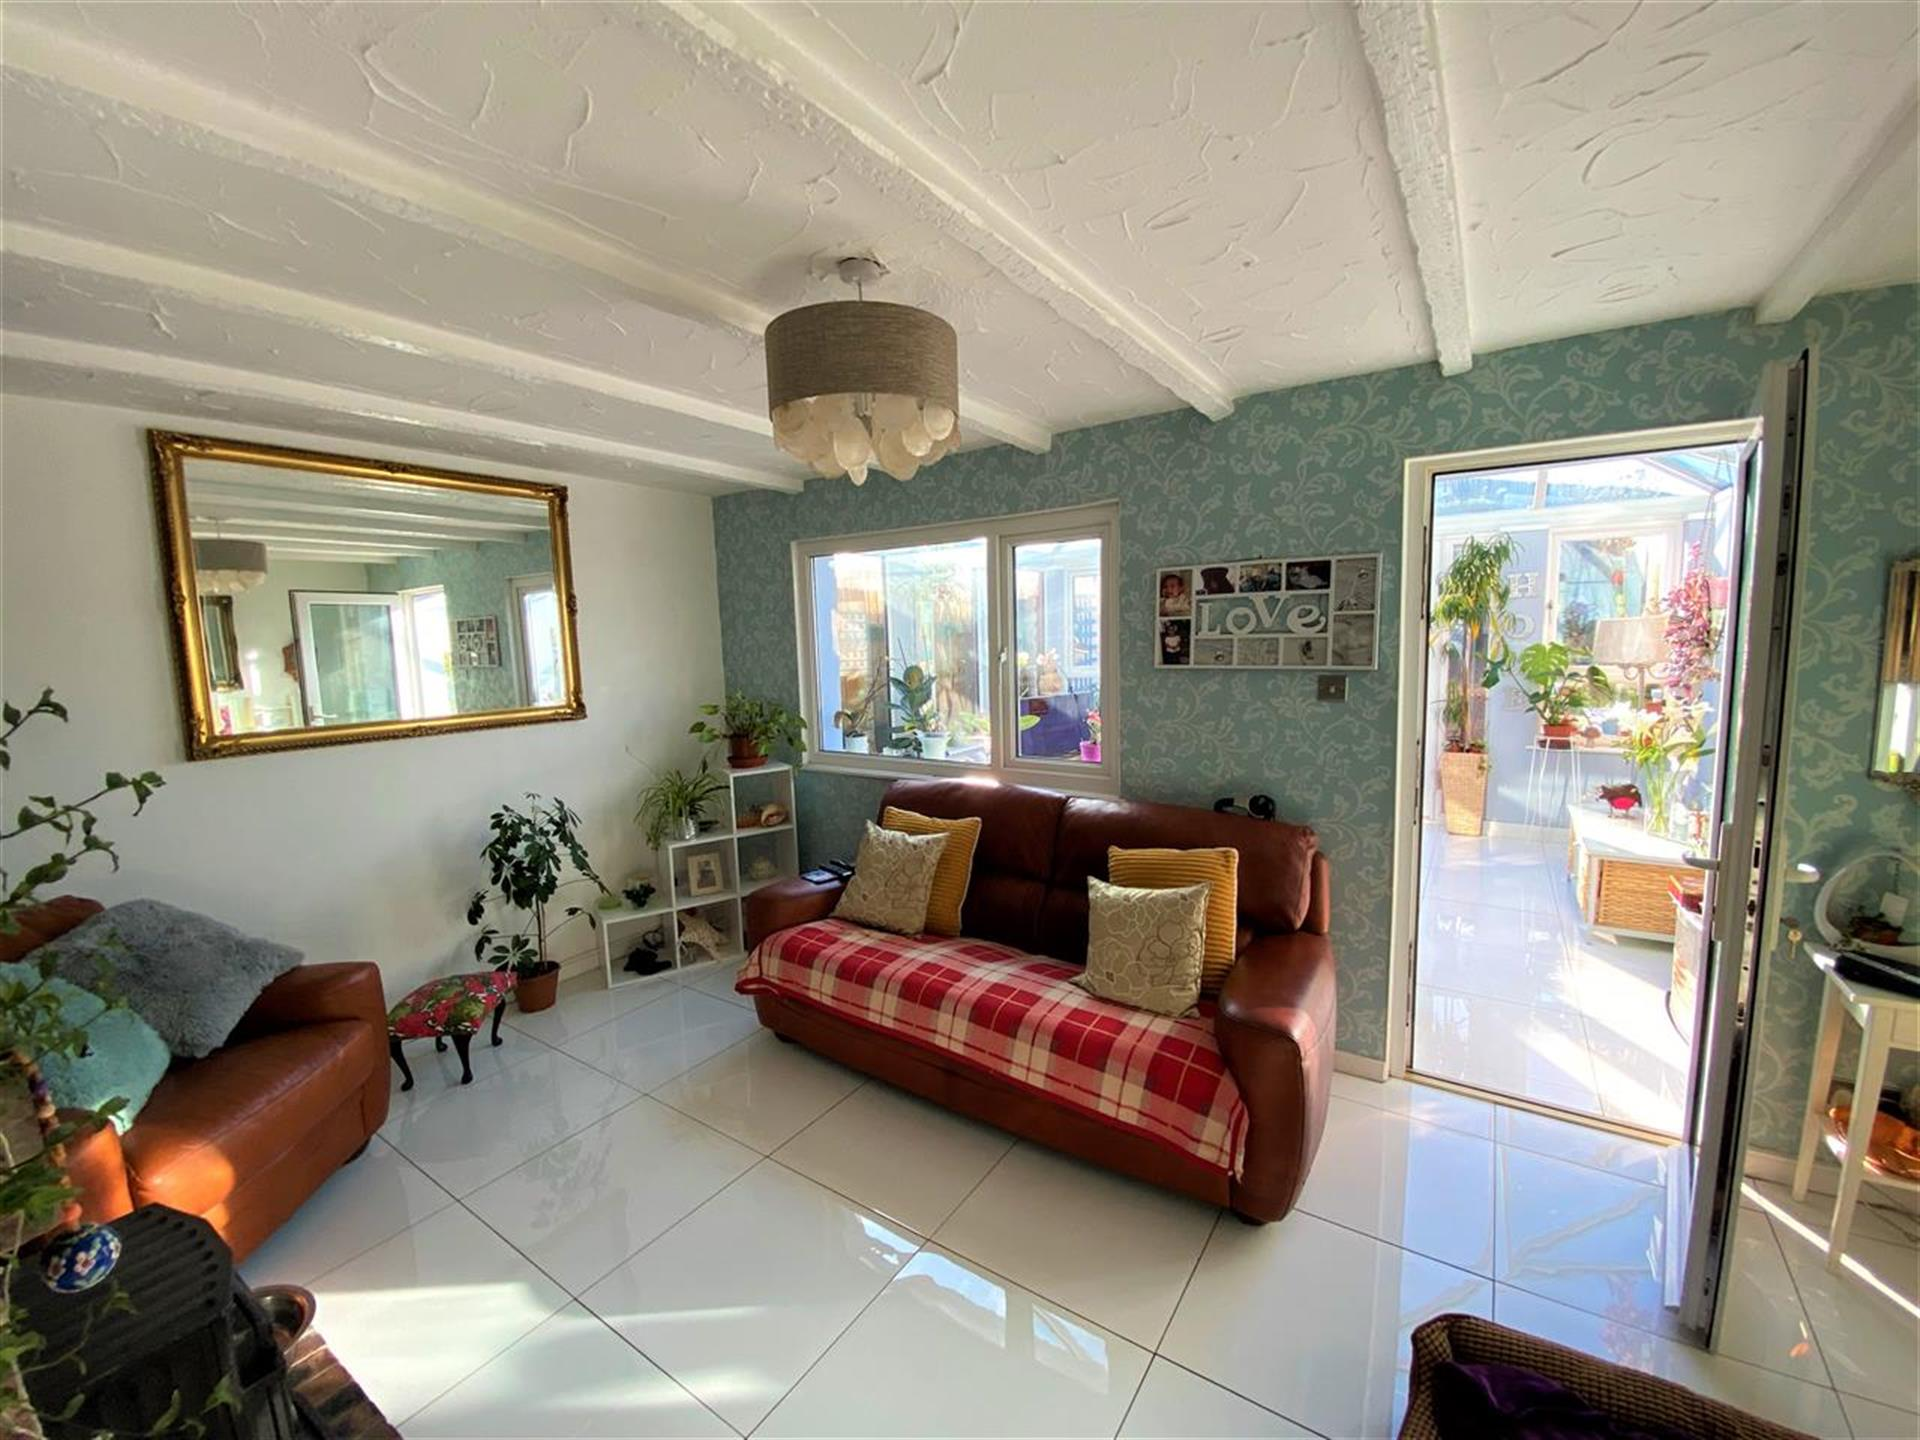 3 Bedroom Terraced House For Sale - Living Room